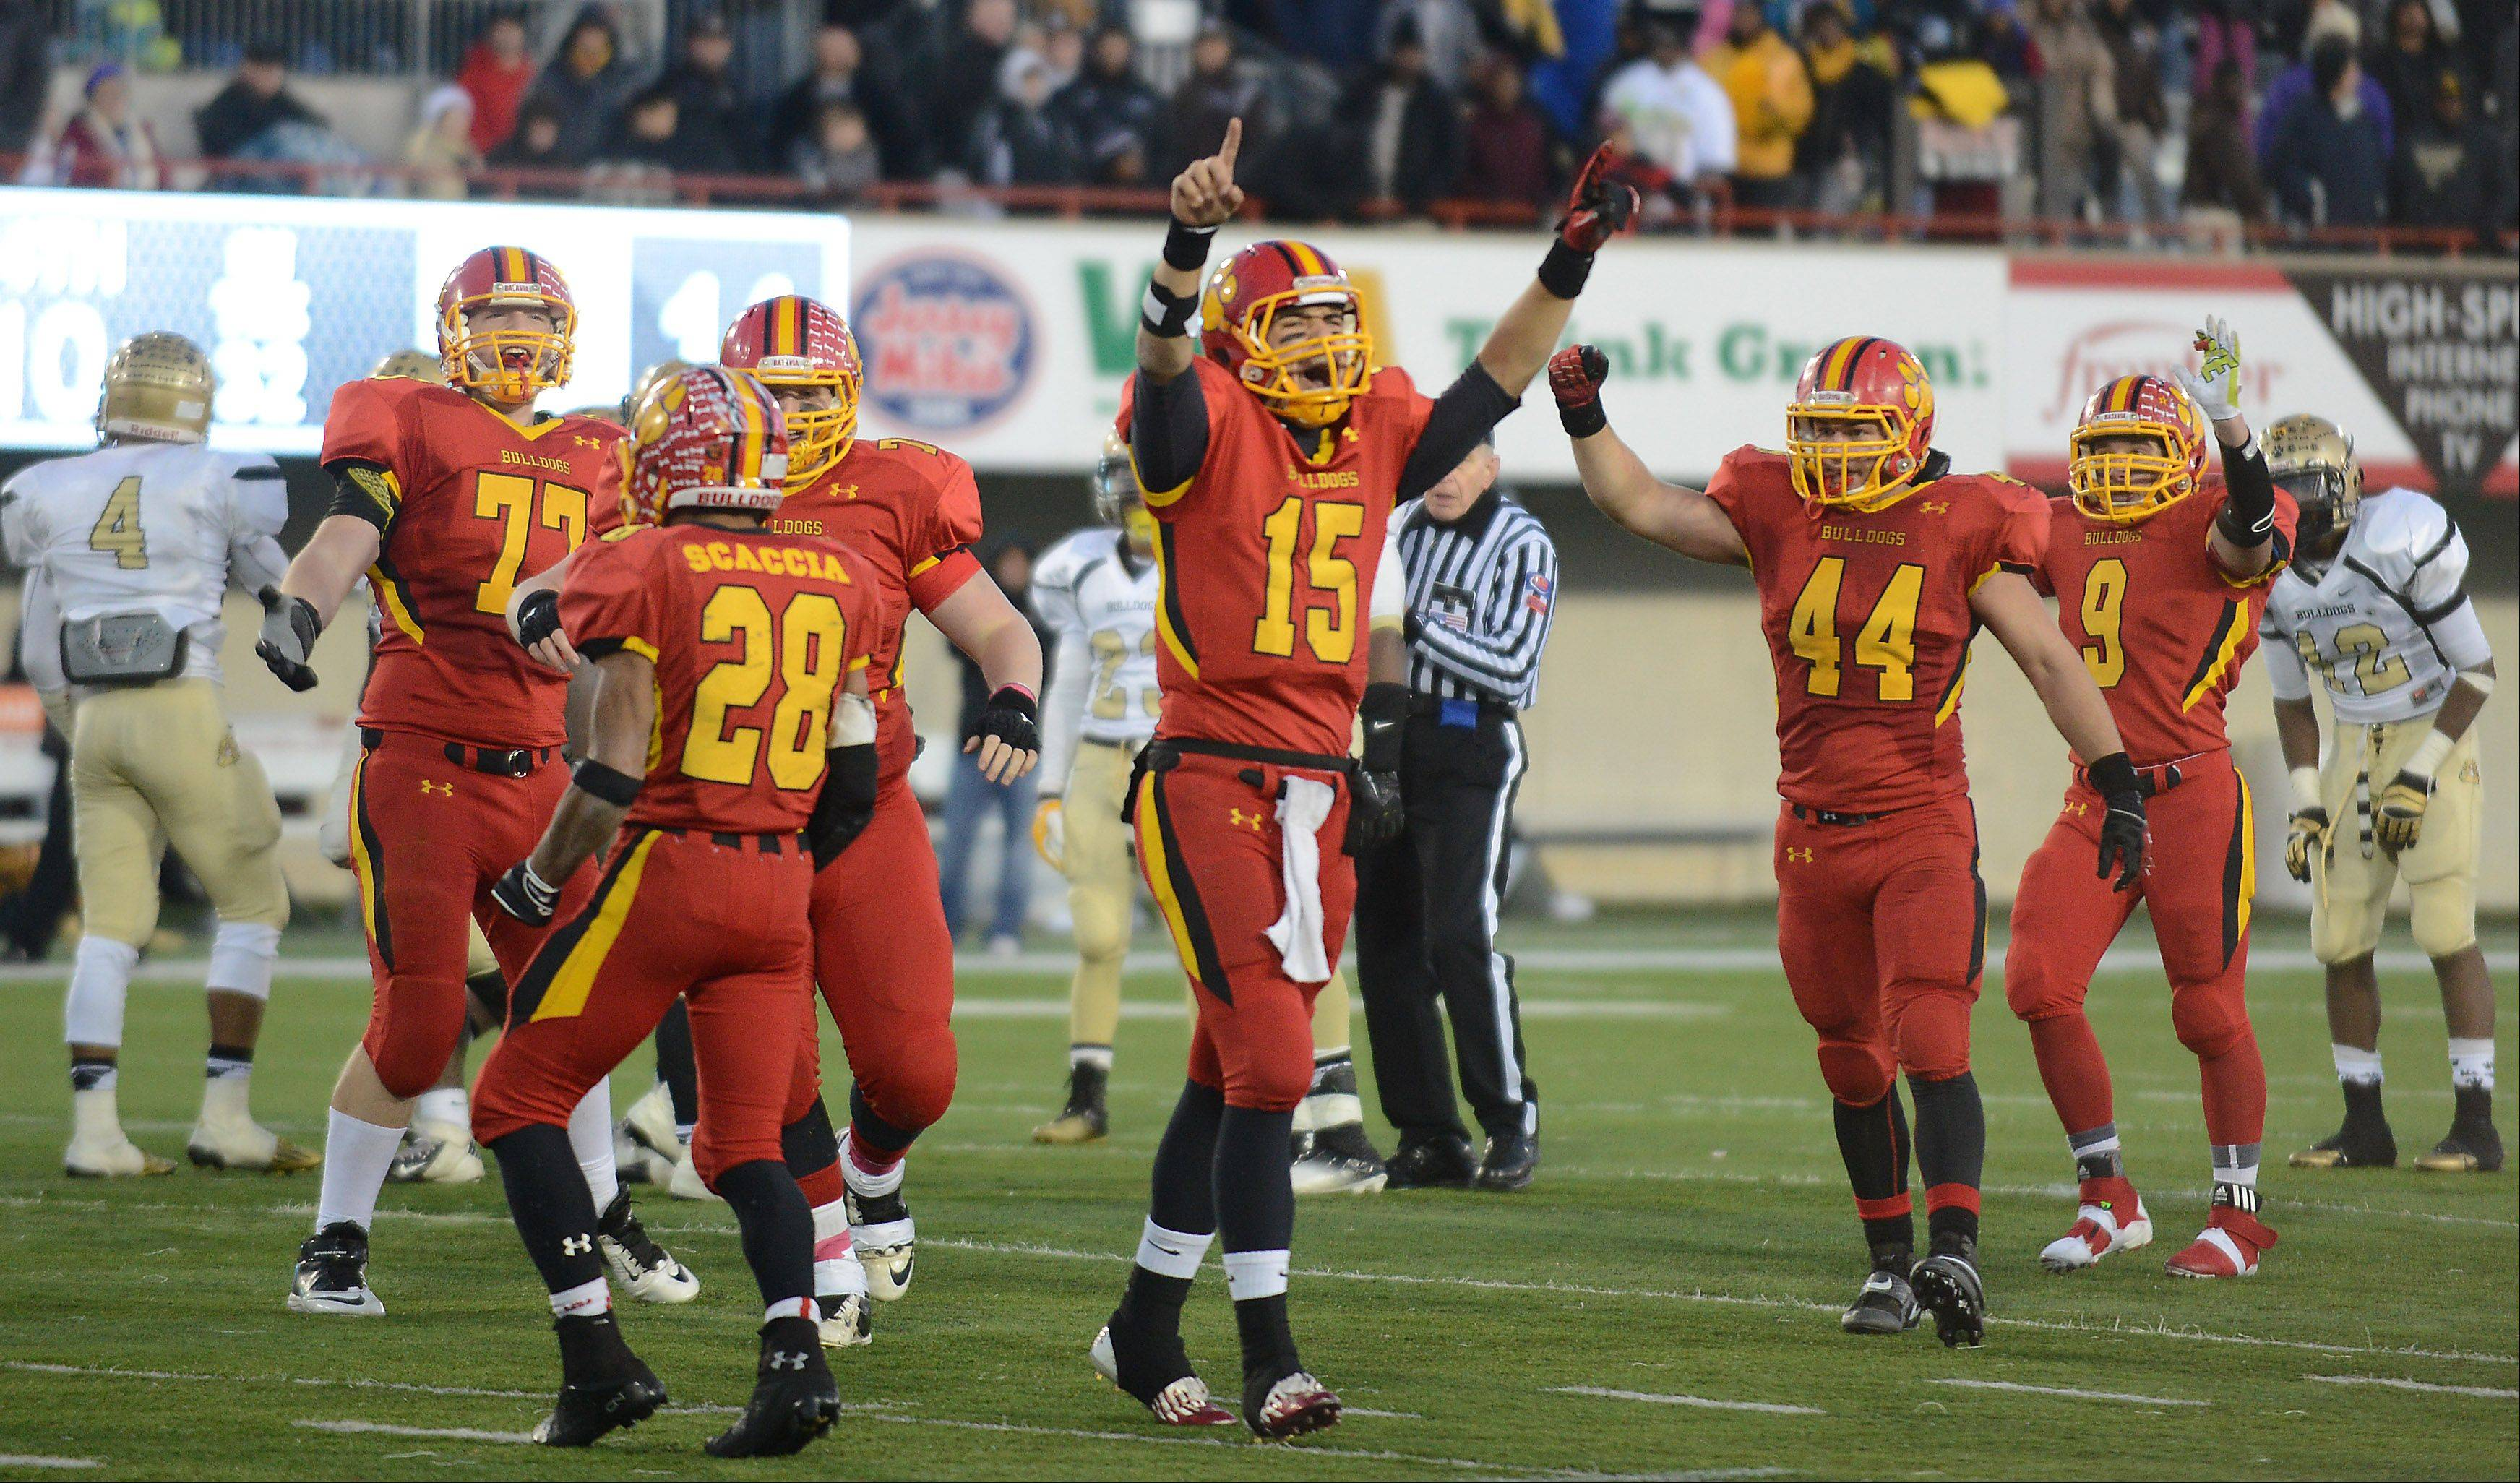 Batavia's Micah Coffey (15) and the offense celebrate as the final second ticks off the clock and they win the 6A championship game Saturday in DeKalb.